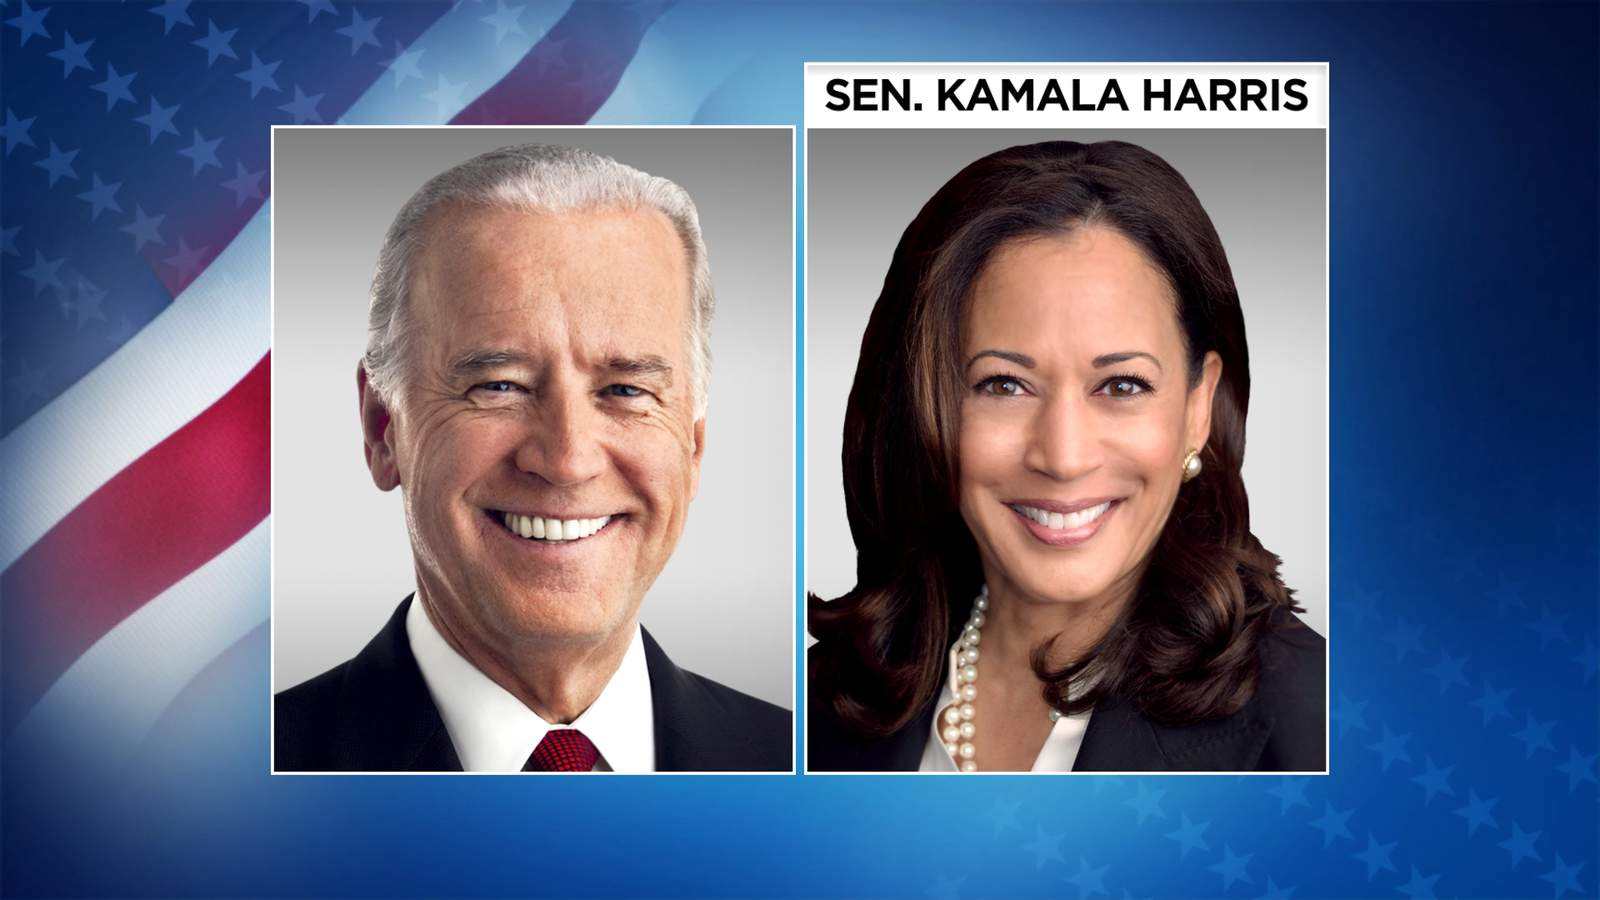 Joe Biden Picks California Sen Kamala Harris As 2020 Running Mate In Historic Move